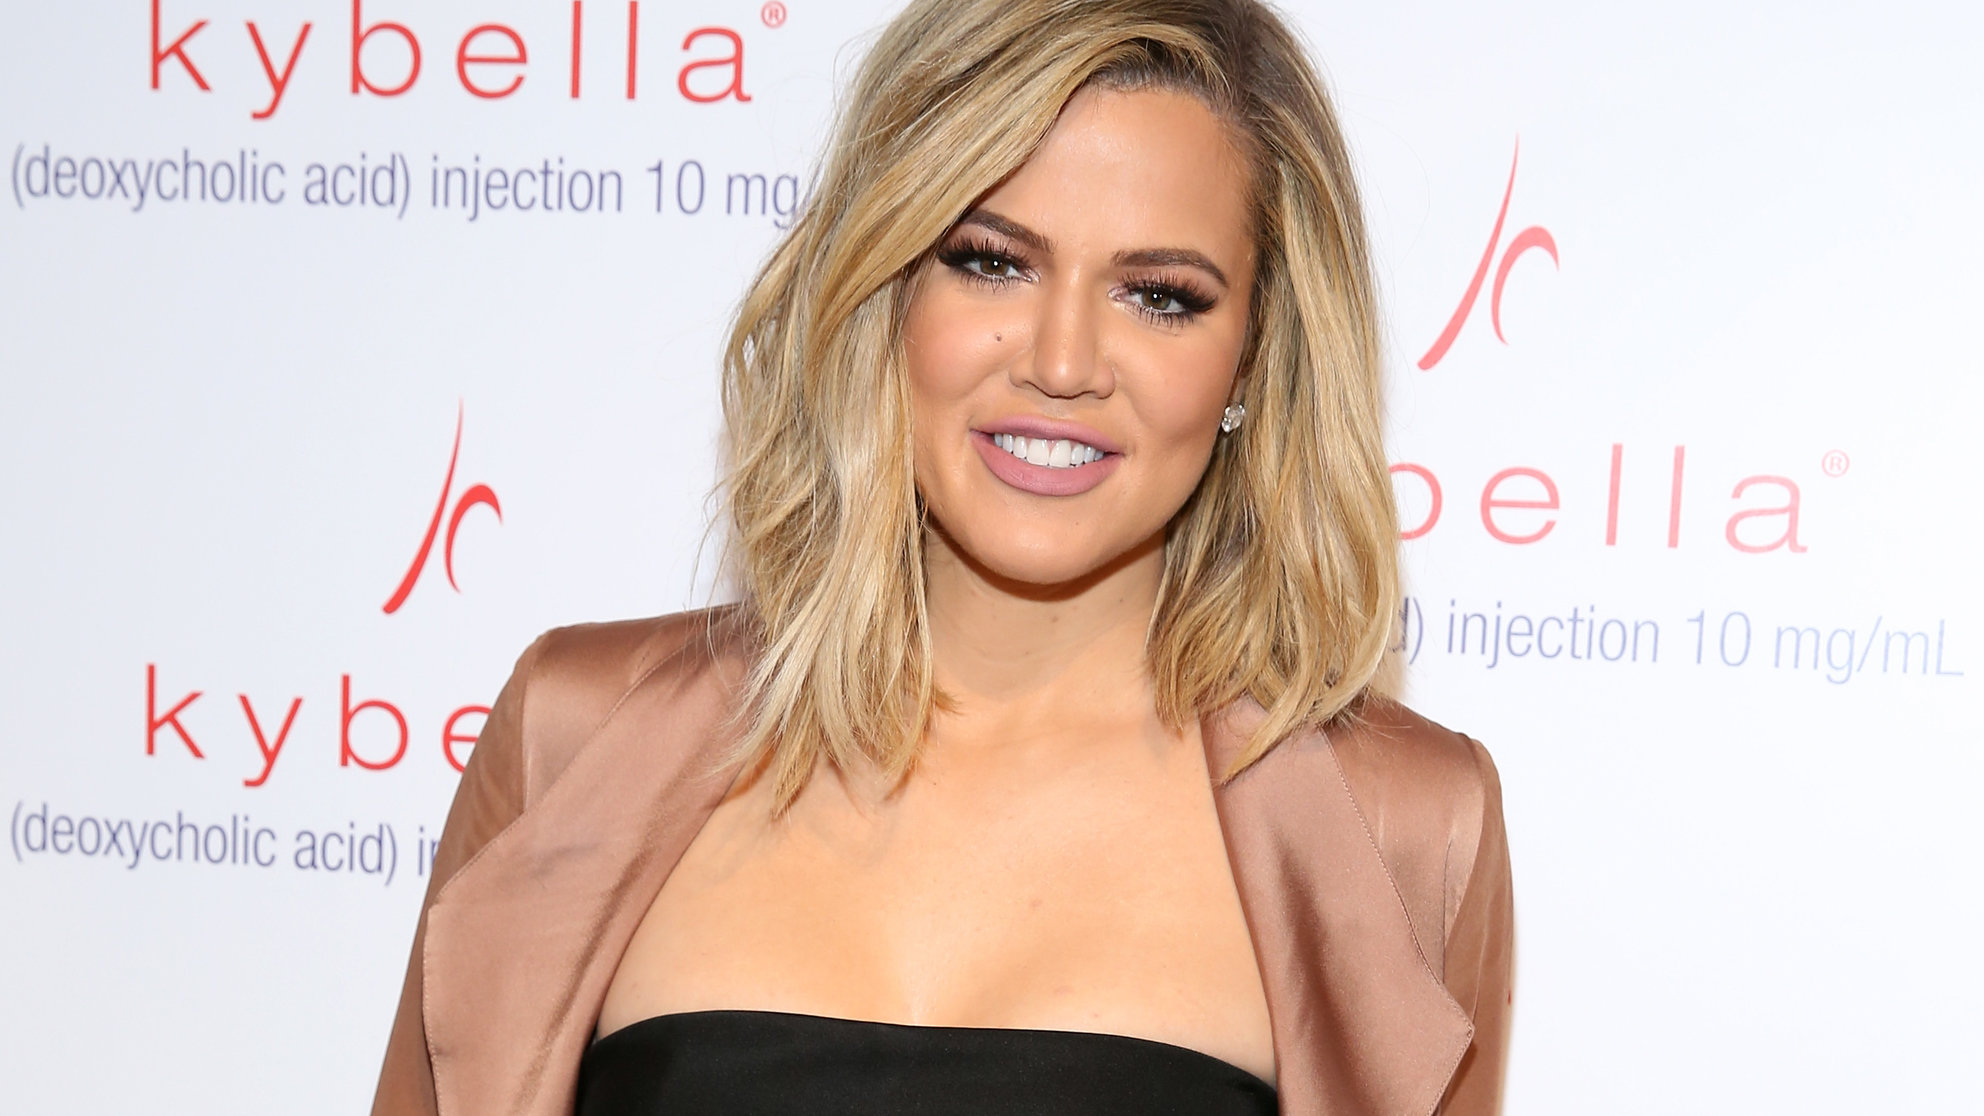 Khloé Kardashian Shares Her Daily Workout Routine on Snapchat